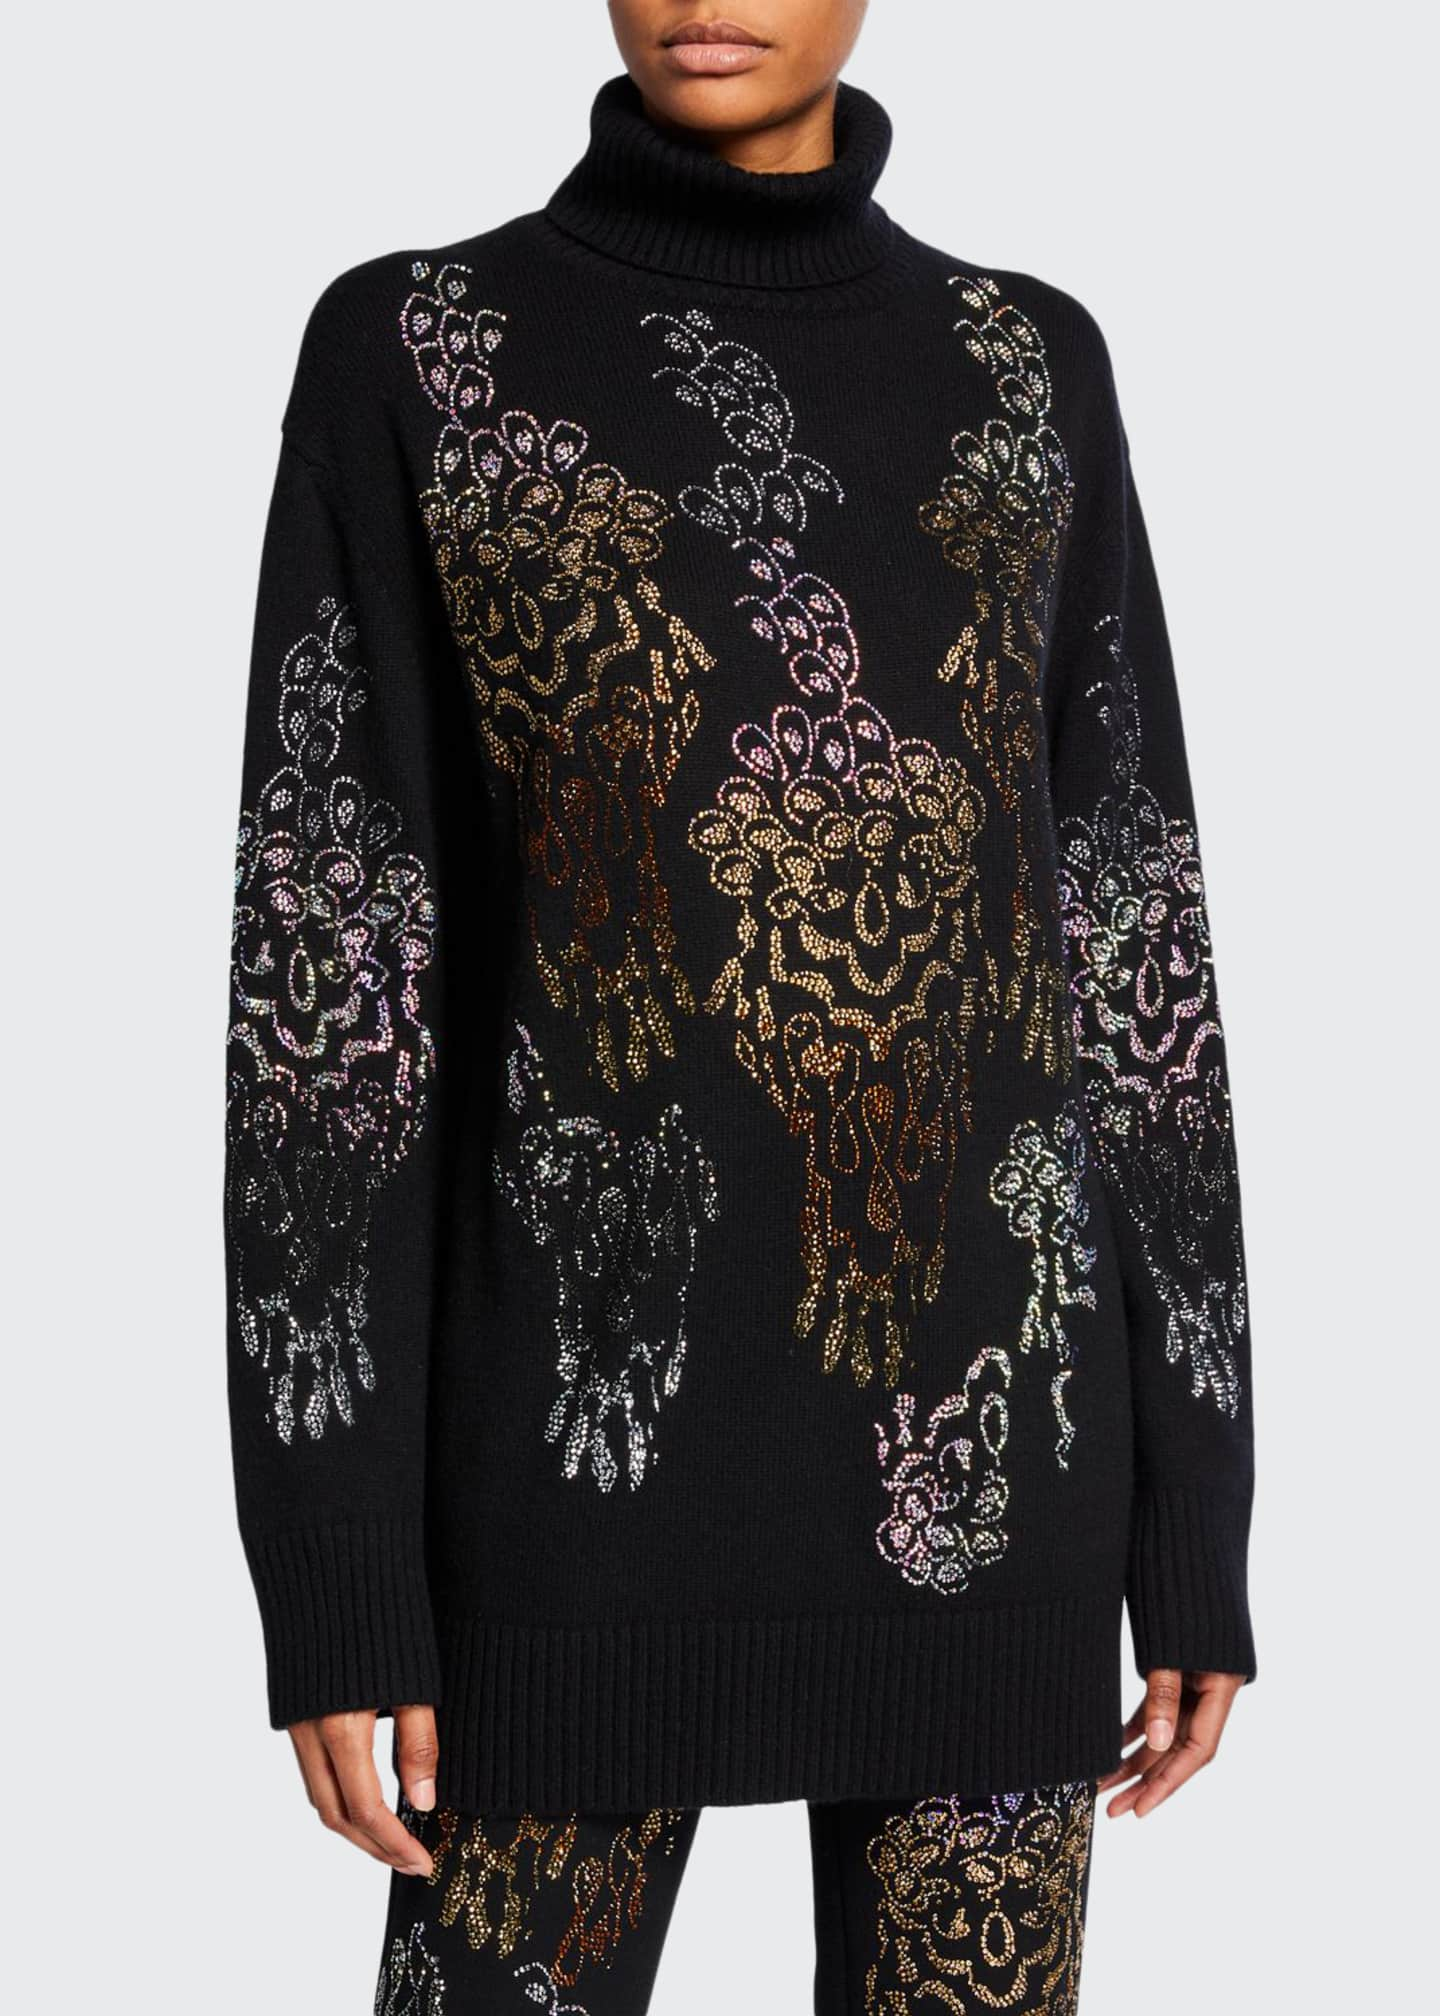 Libertine Overflowing With Love Cashmere Jeweled Floral Sweater